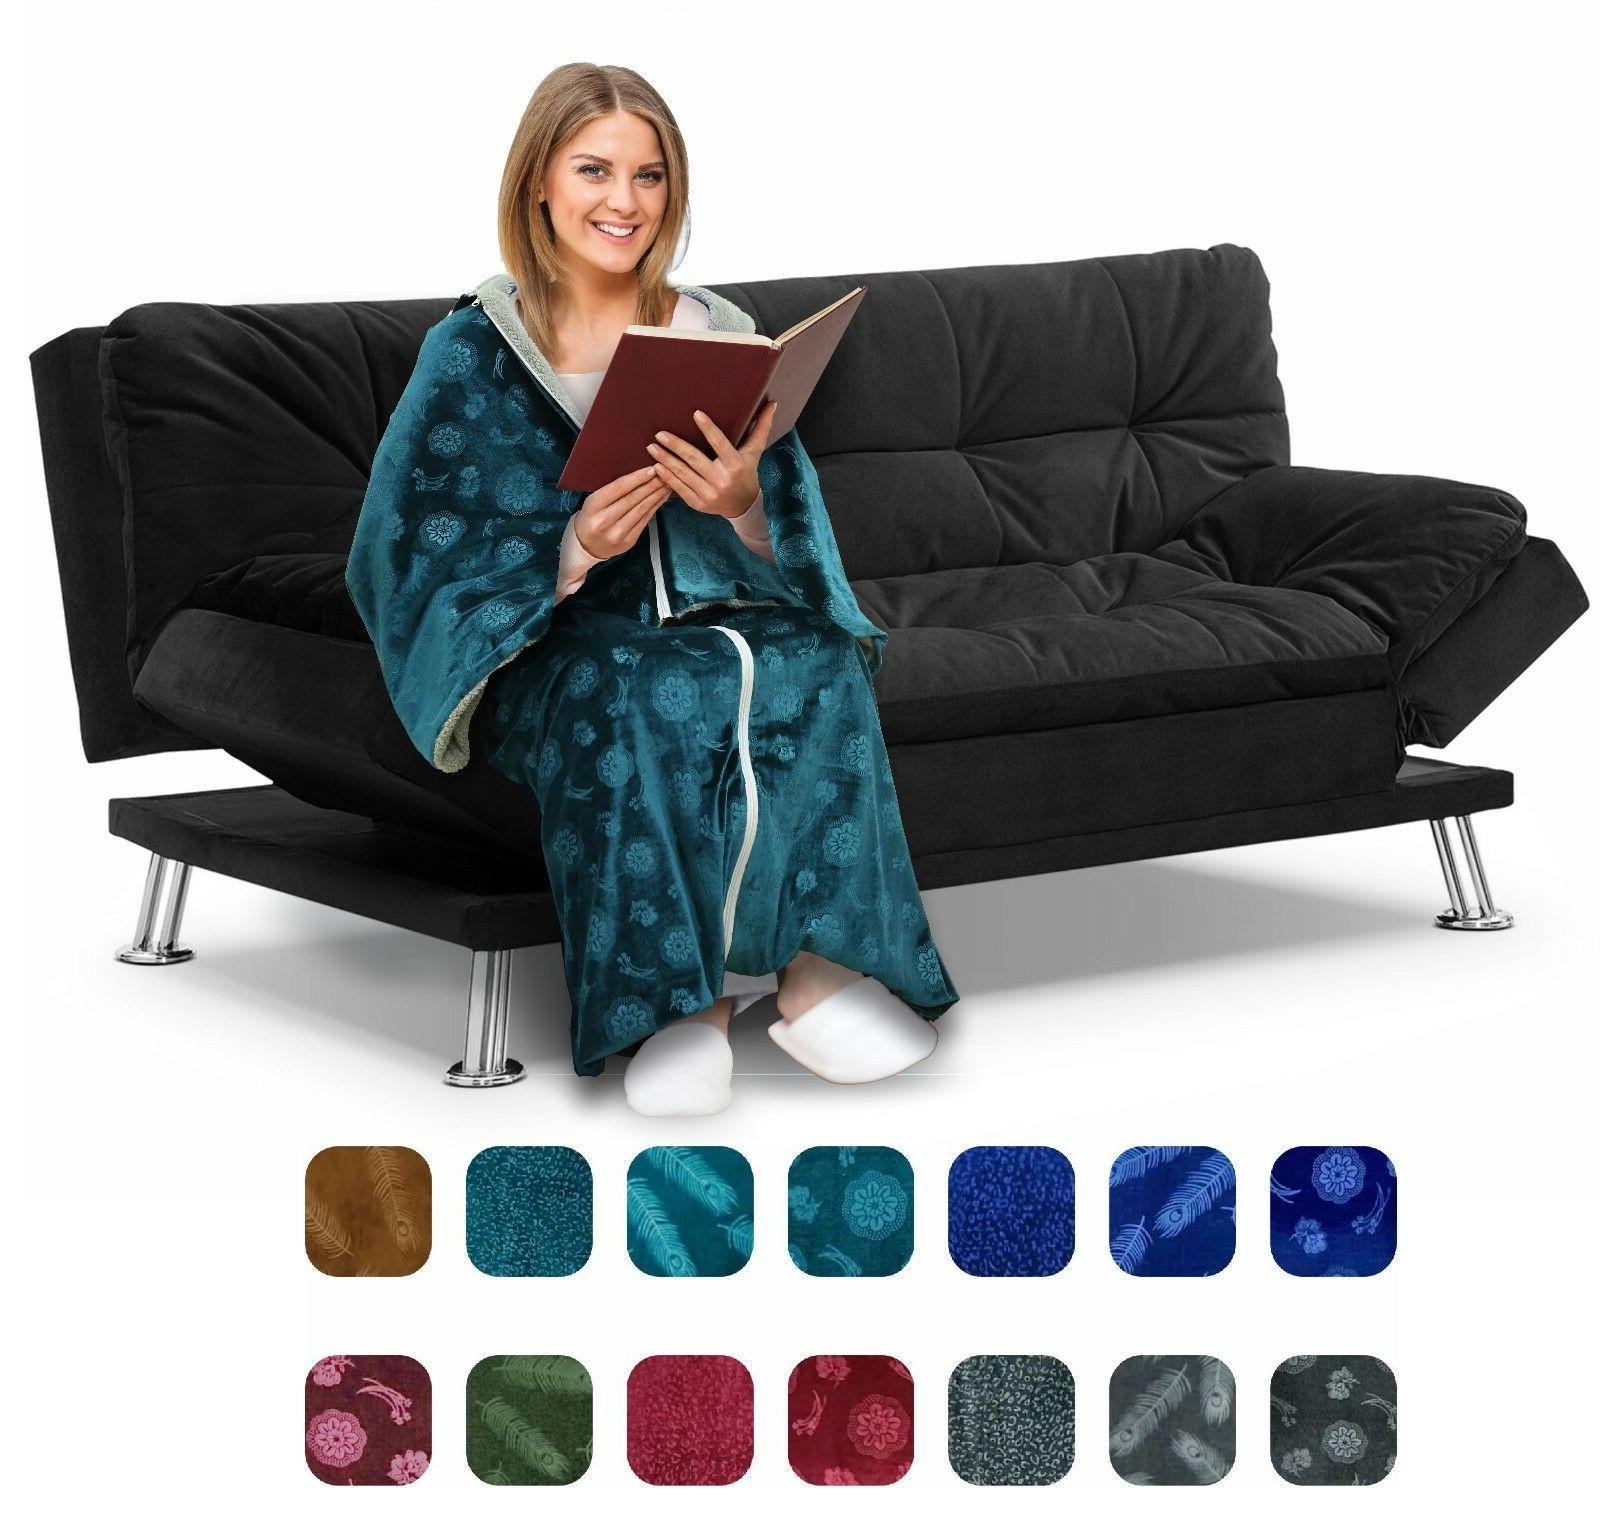 cozee deluxe wearable blanket for adults ideal